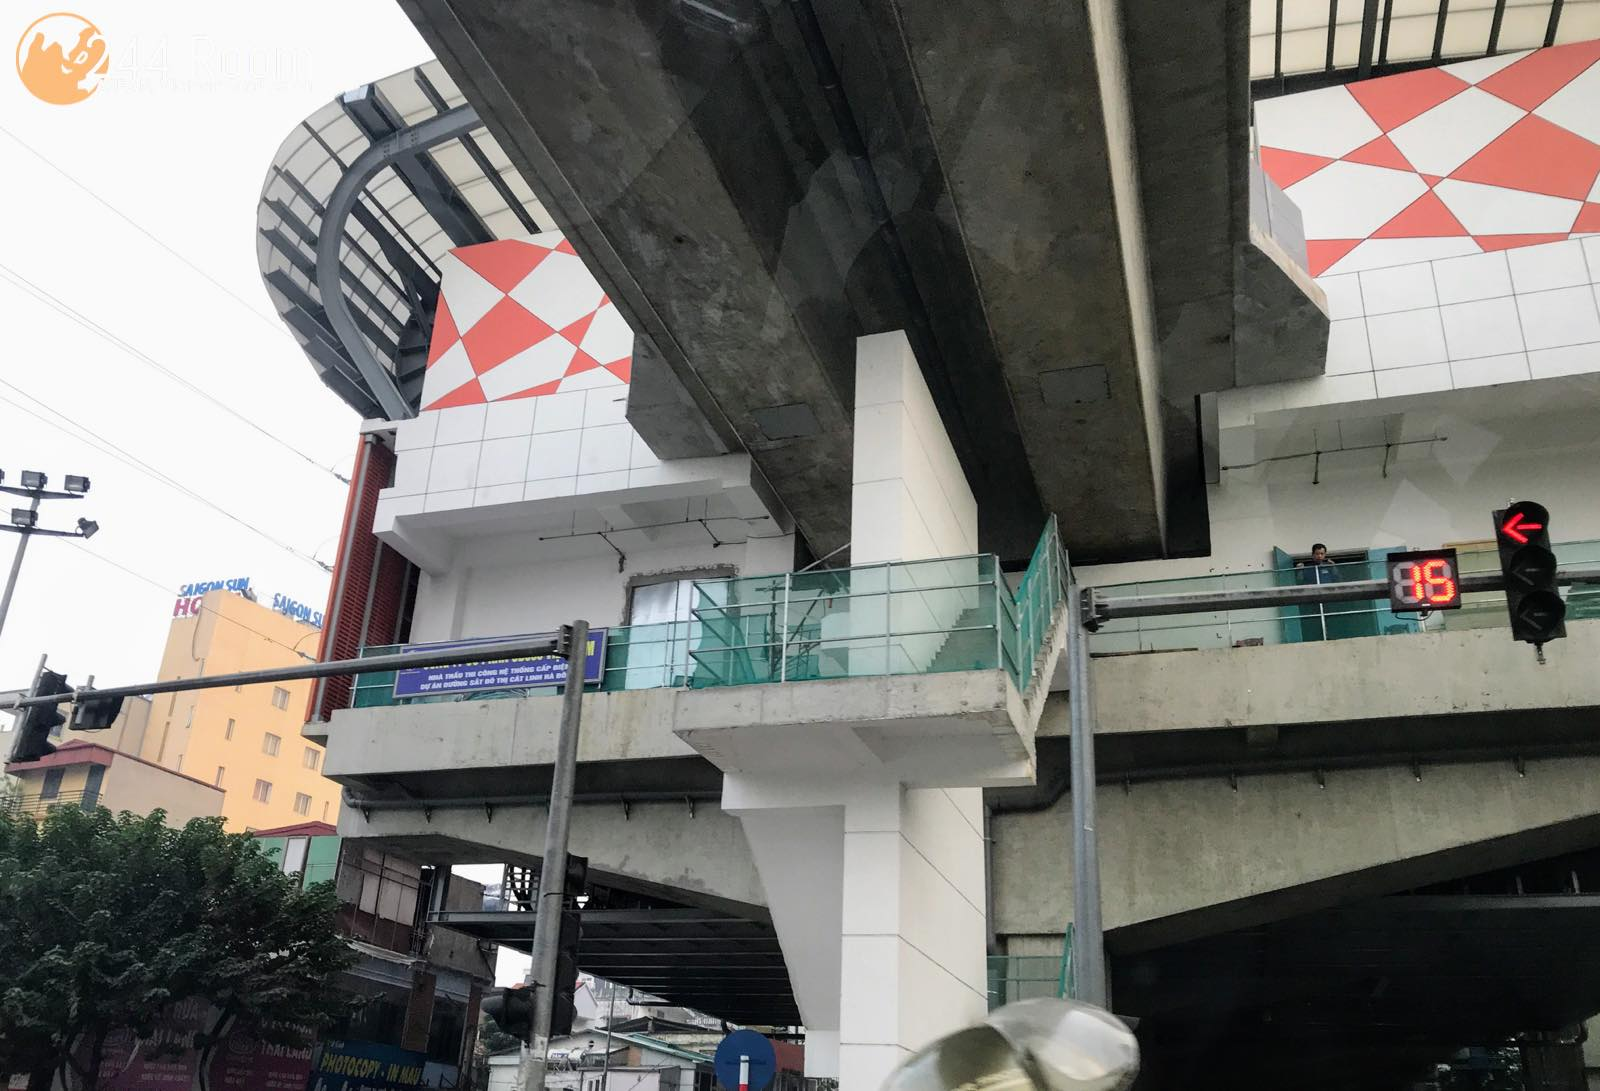 ハノイ高架鉄道駅 Elevated railway station Hanoi